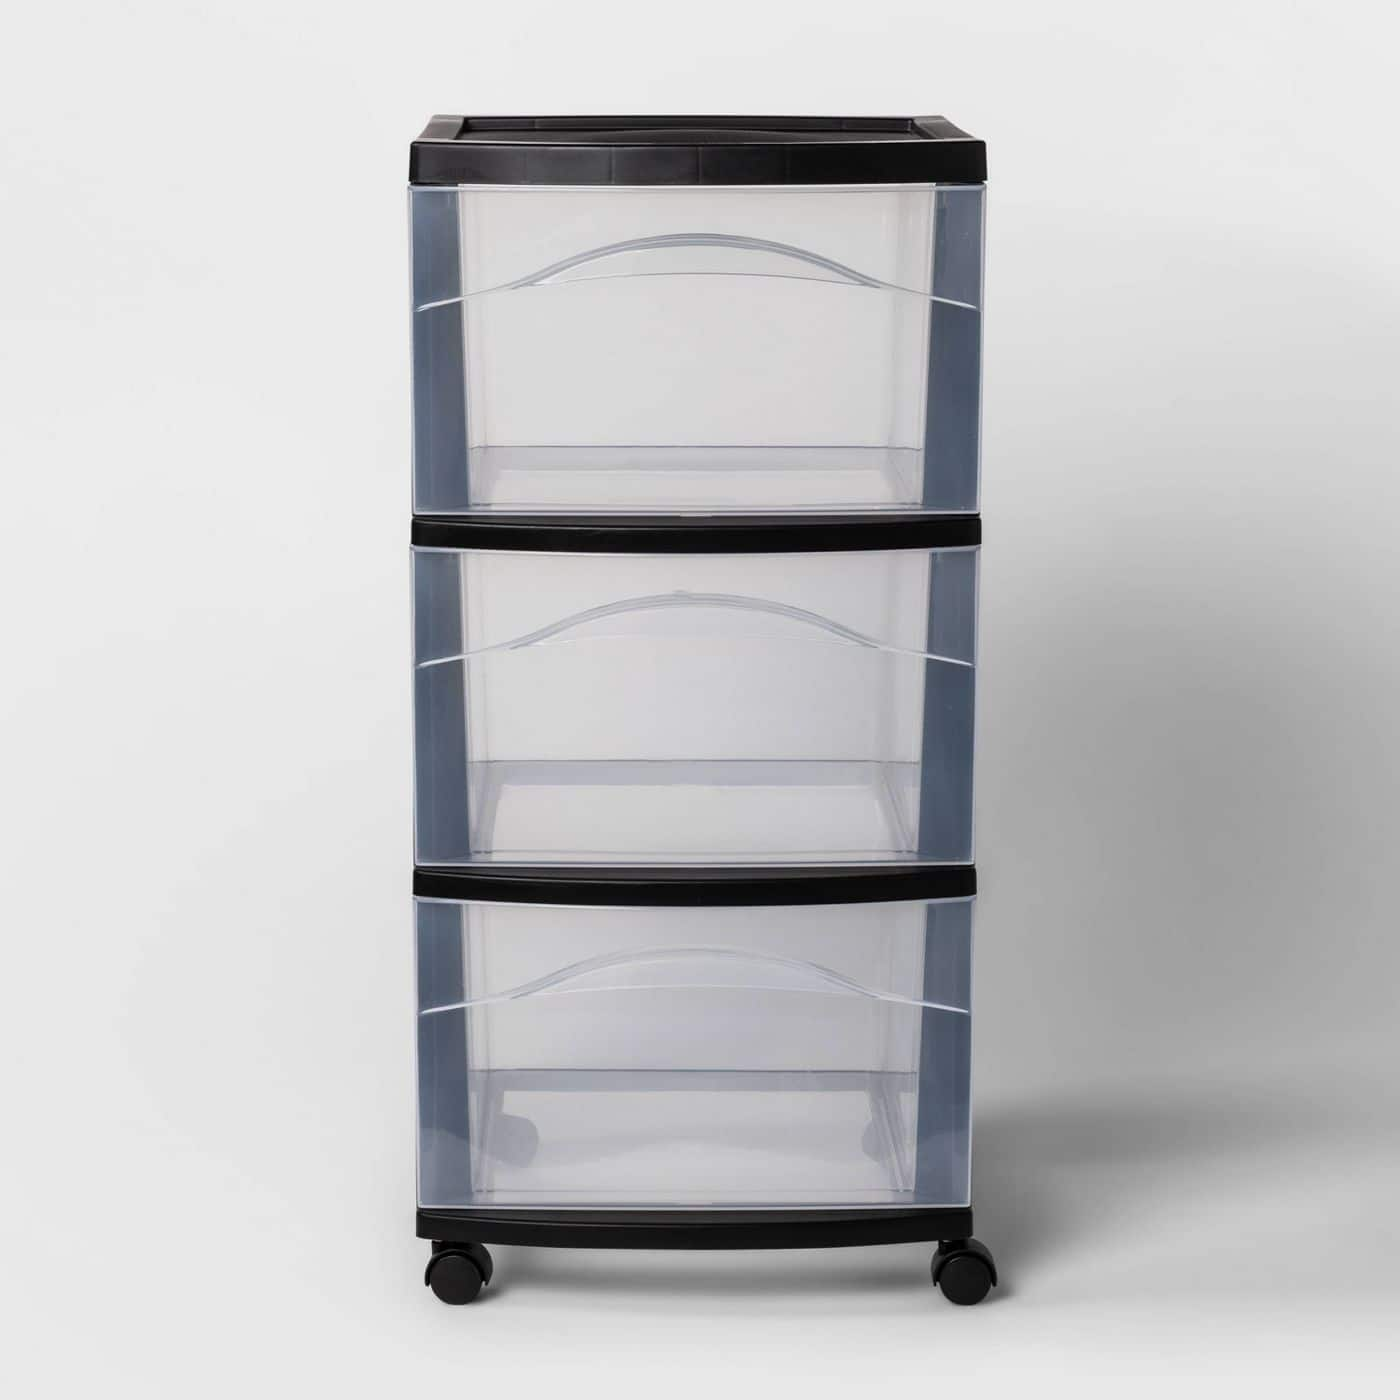 Room Essentials 3-Drawer Medium Wheeled Cart (Black or White) 3 for $20 + Free Store Pickup & More